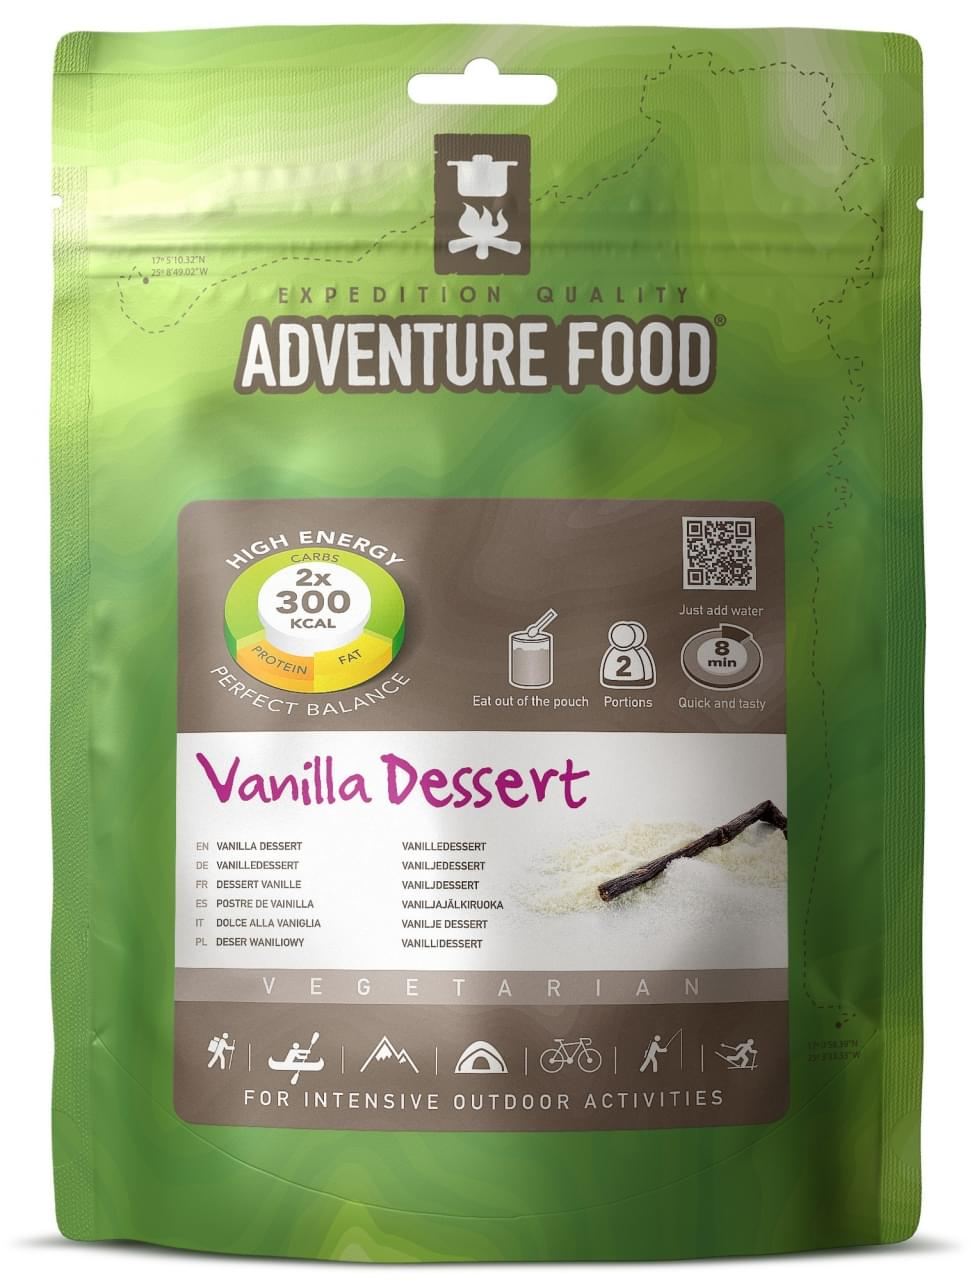 Adventure Food Dessert Twee porties Vanilla Dessert